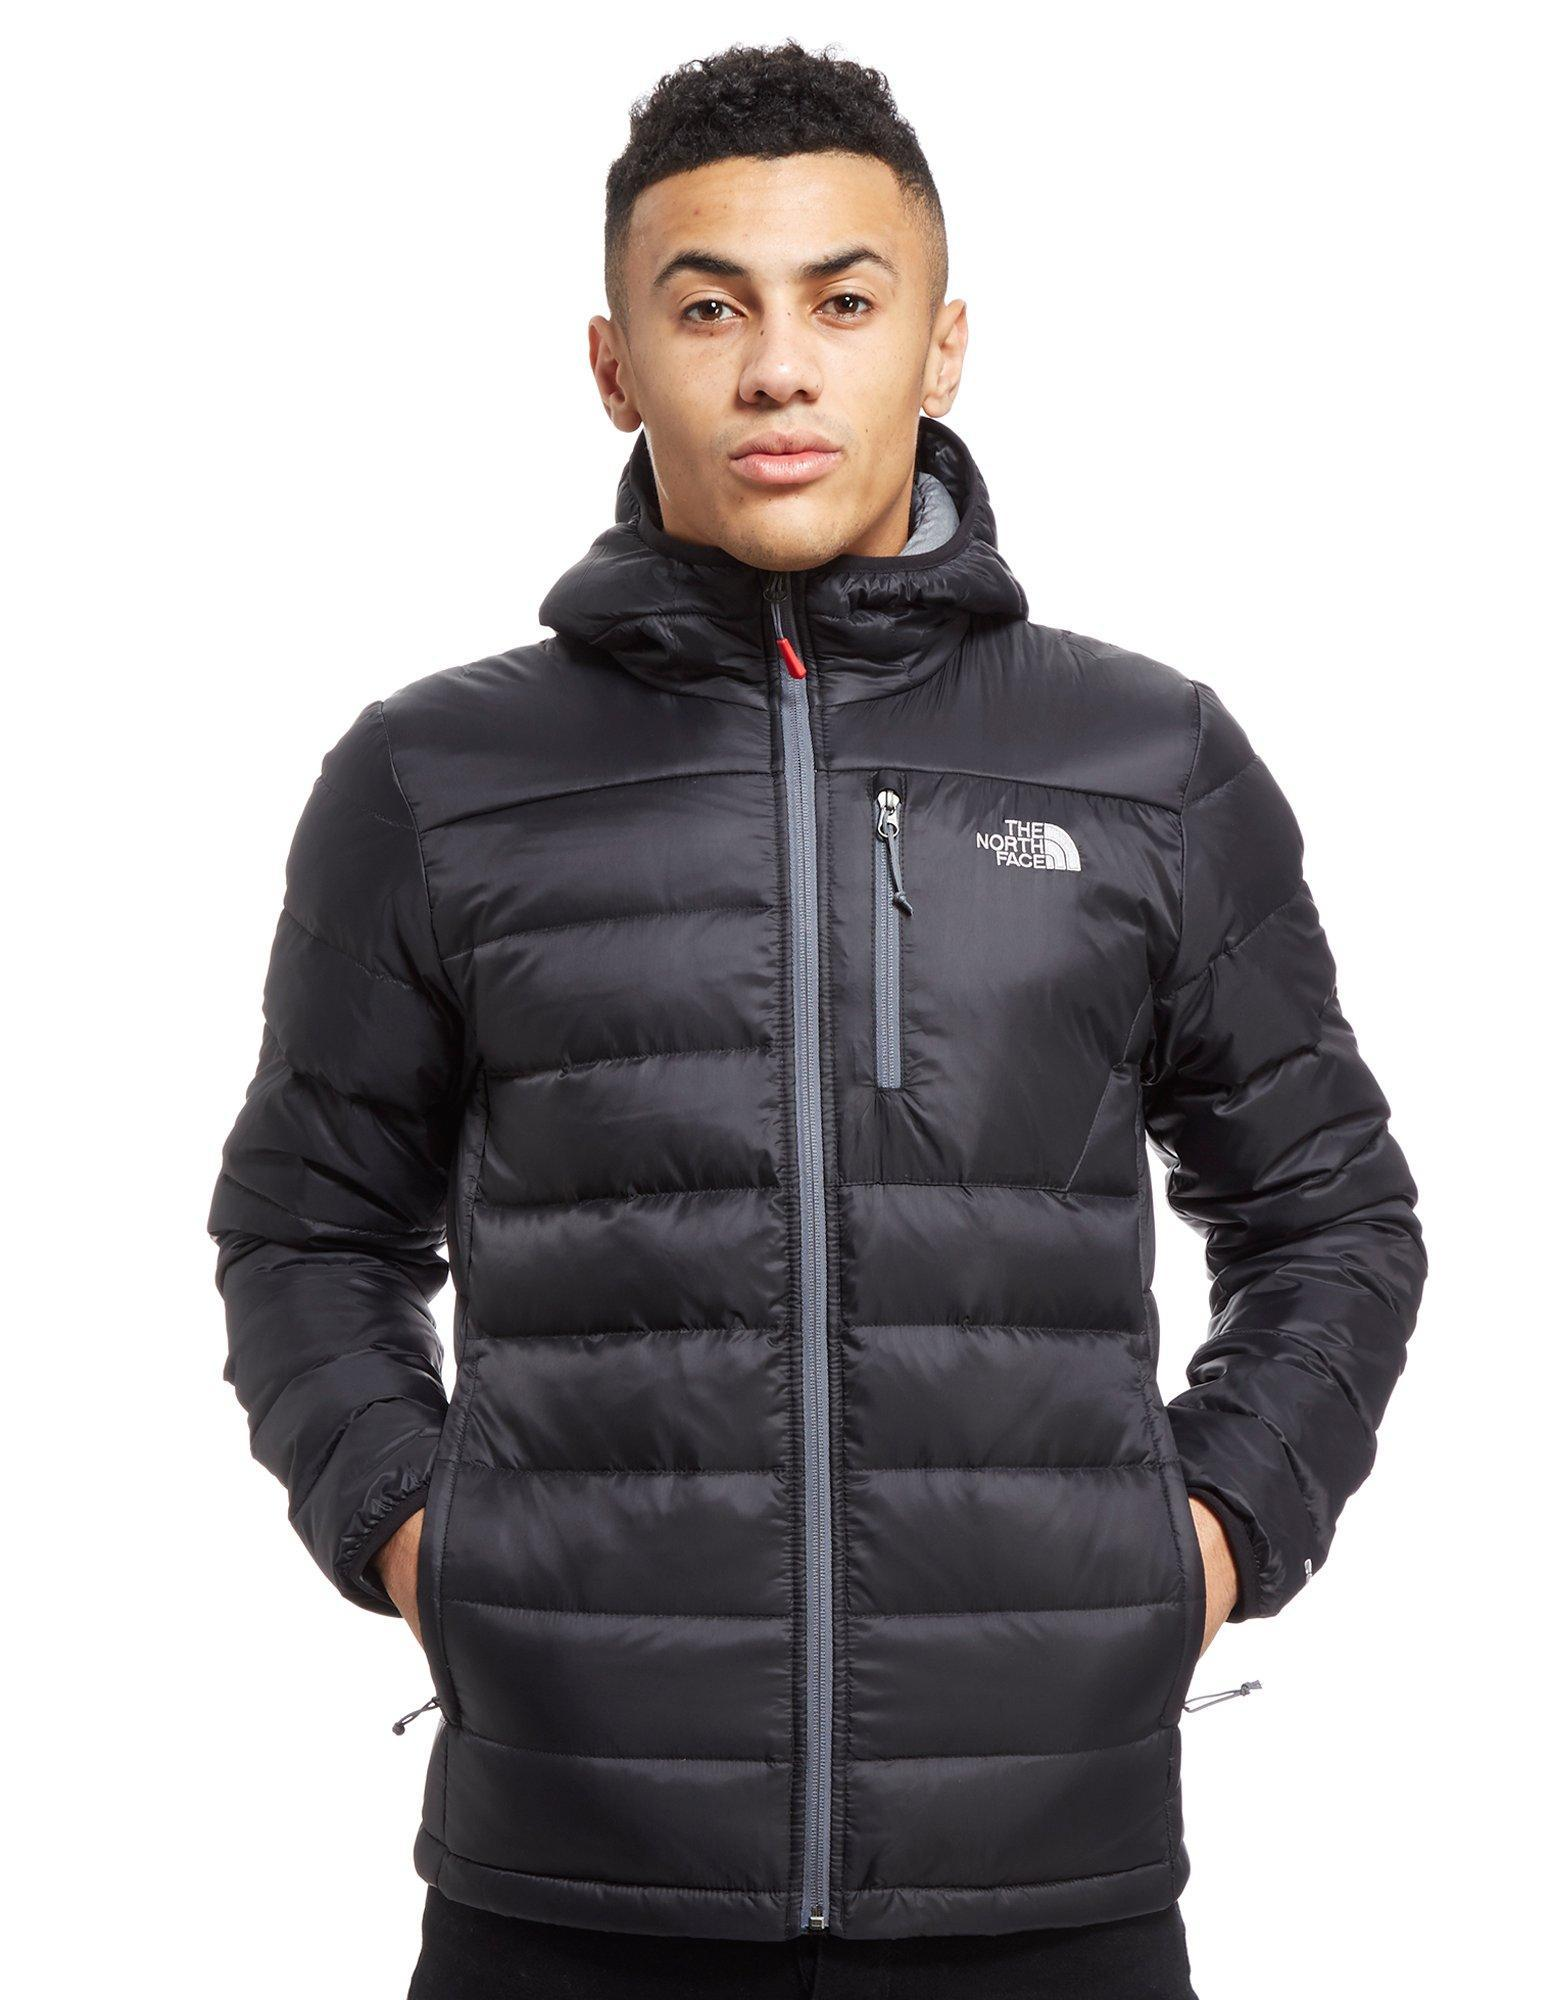 e1f65d57fde3 ... black 0026f a1b69 8ab15 693d4  sweden the north face 100 glacier 14 zip  jacket junior gallery. previously sold at jd